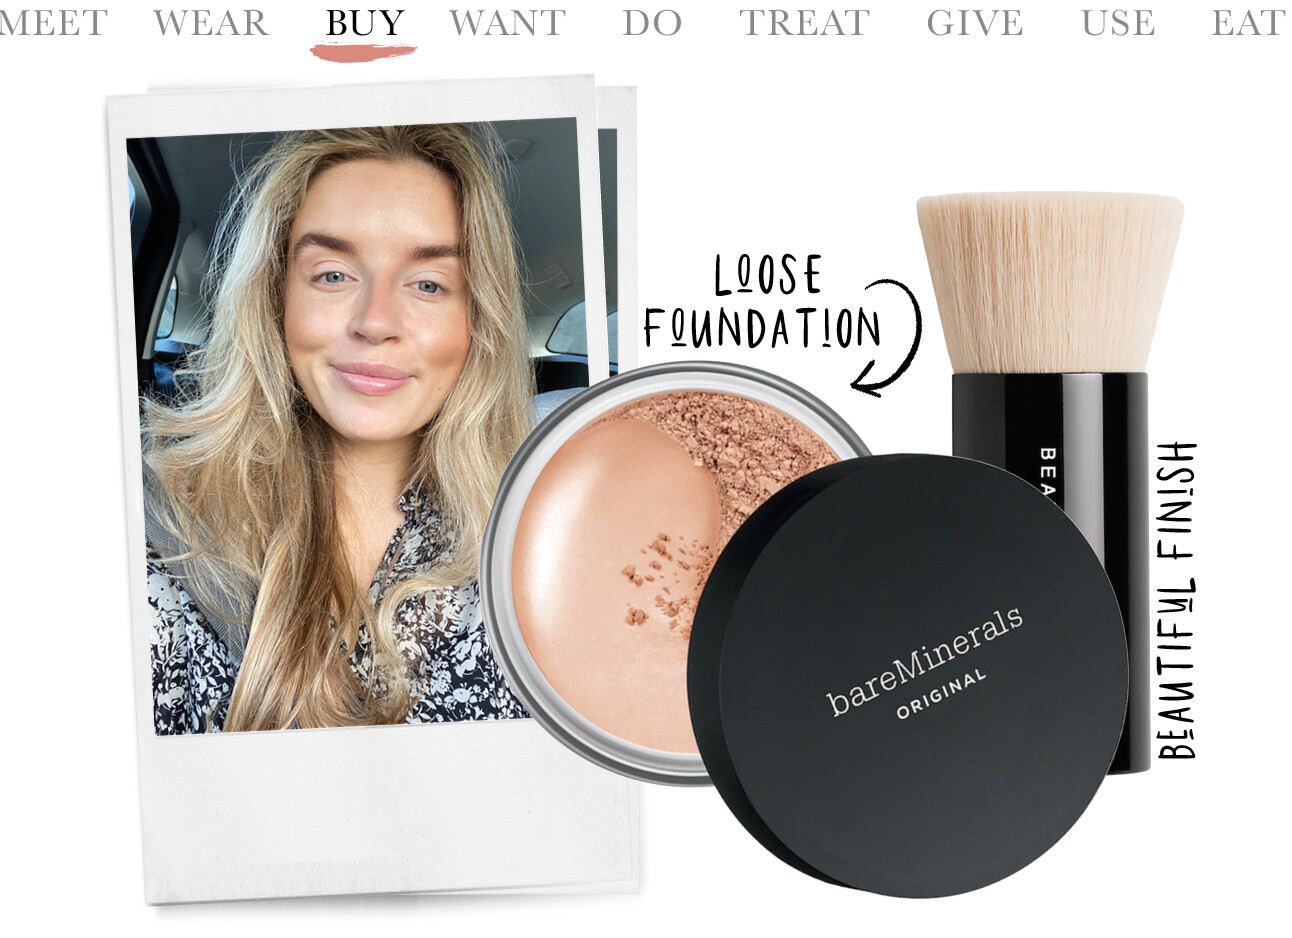 Lotte van scherpenzeel bareminerals foundation